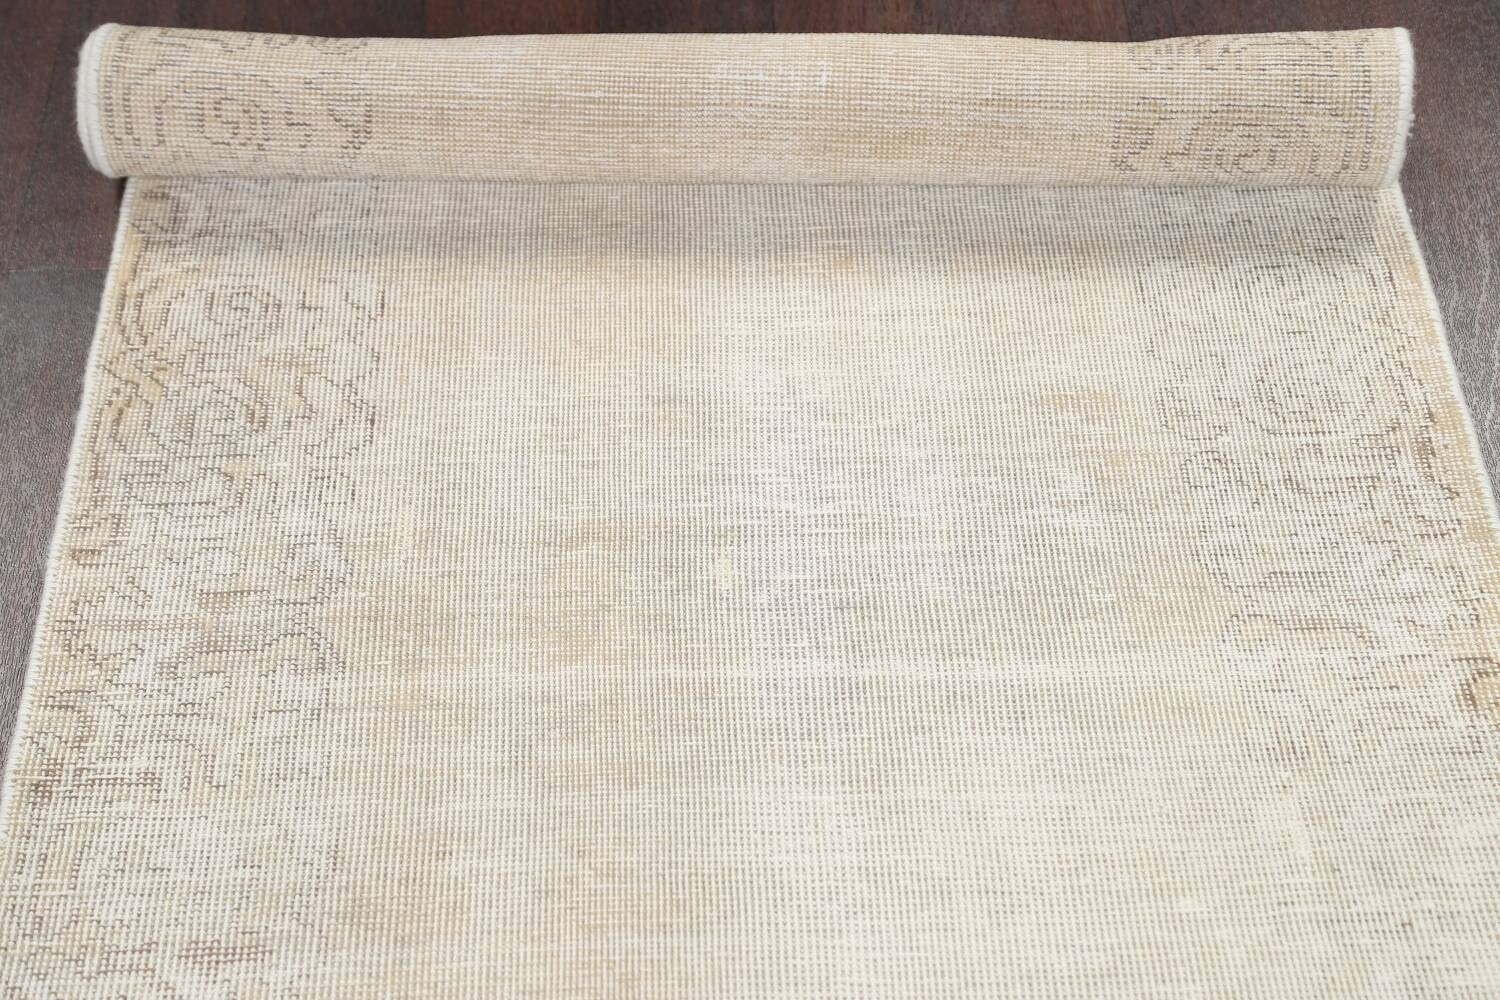 Muted Distressed Tabriz Persian Runner Rug 3x12 image 15